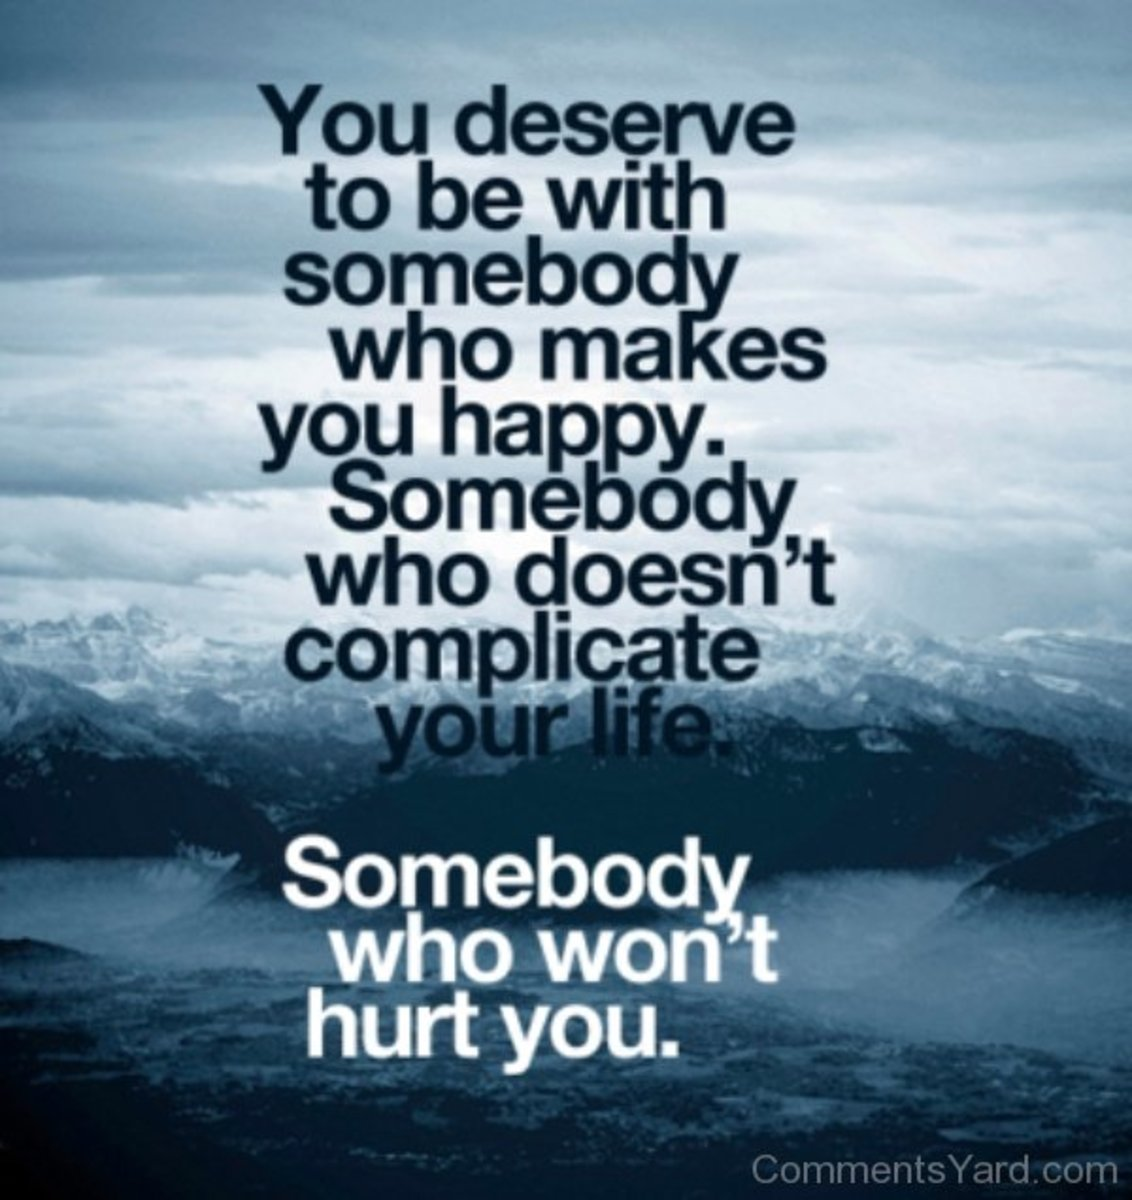 you deserve to be happy bull crap